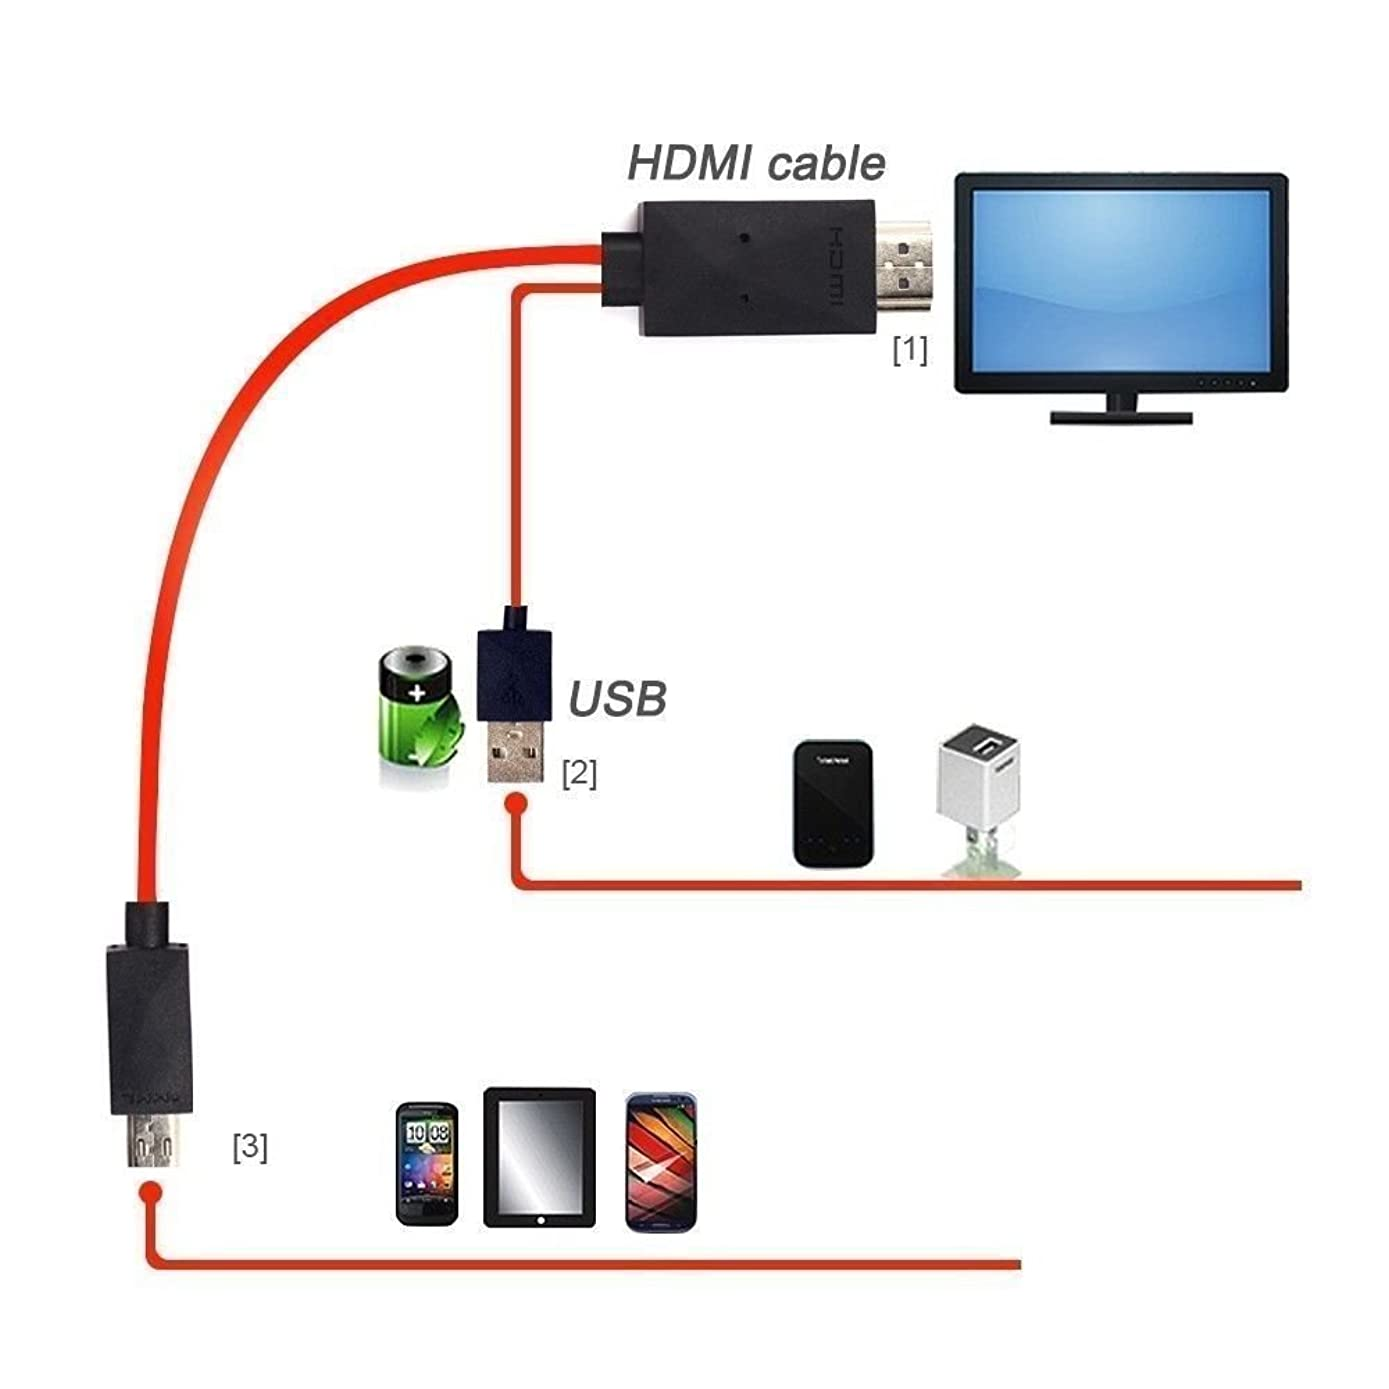 Phone to Tv Cable, 1080P MHL 11-pin Micro USB to HDMI Cable Adapter with Video Audio Output for Android Samsung Galaxy S3/S4/S5 Note 2/3/4, Galaxy Tab 3 8.0 T310, Tab 3 10.1 P5210, Note 8 N5110, Note